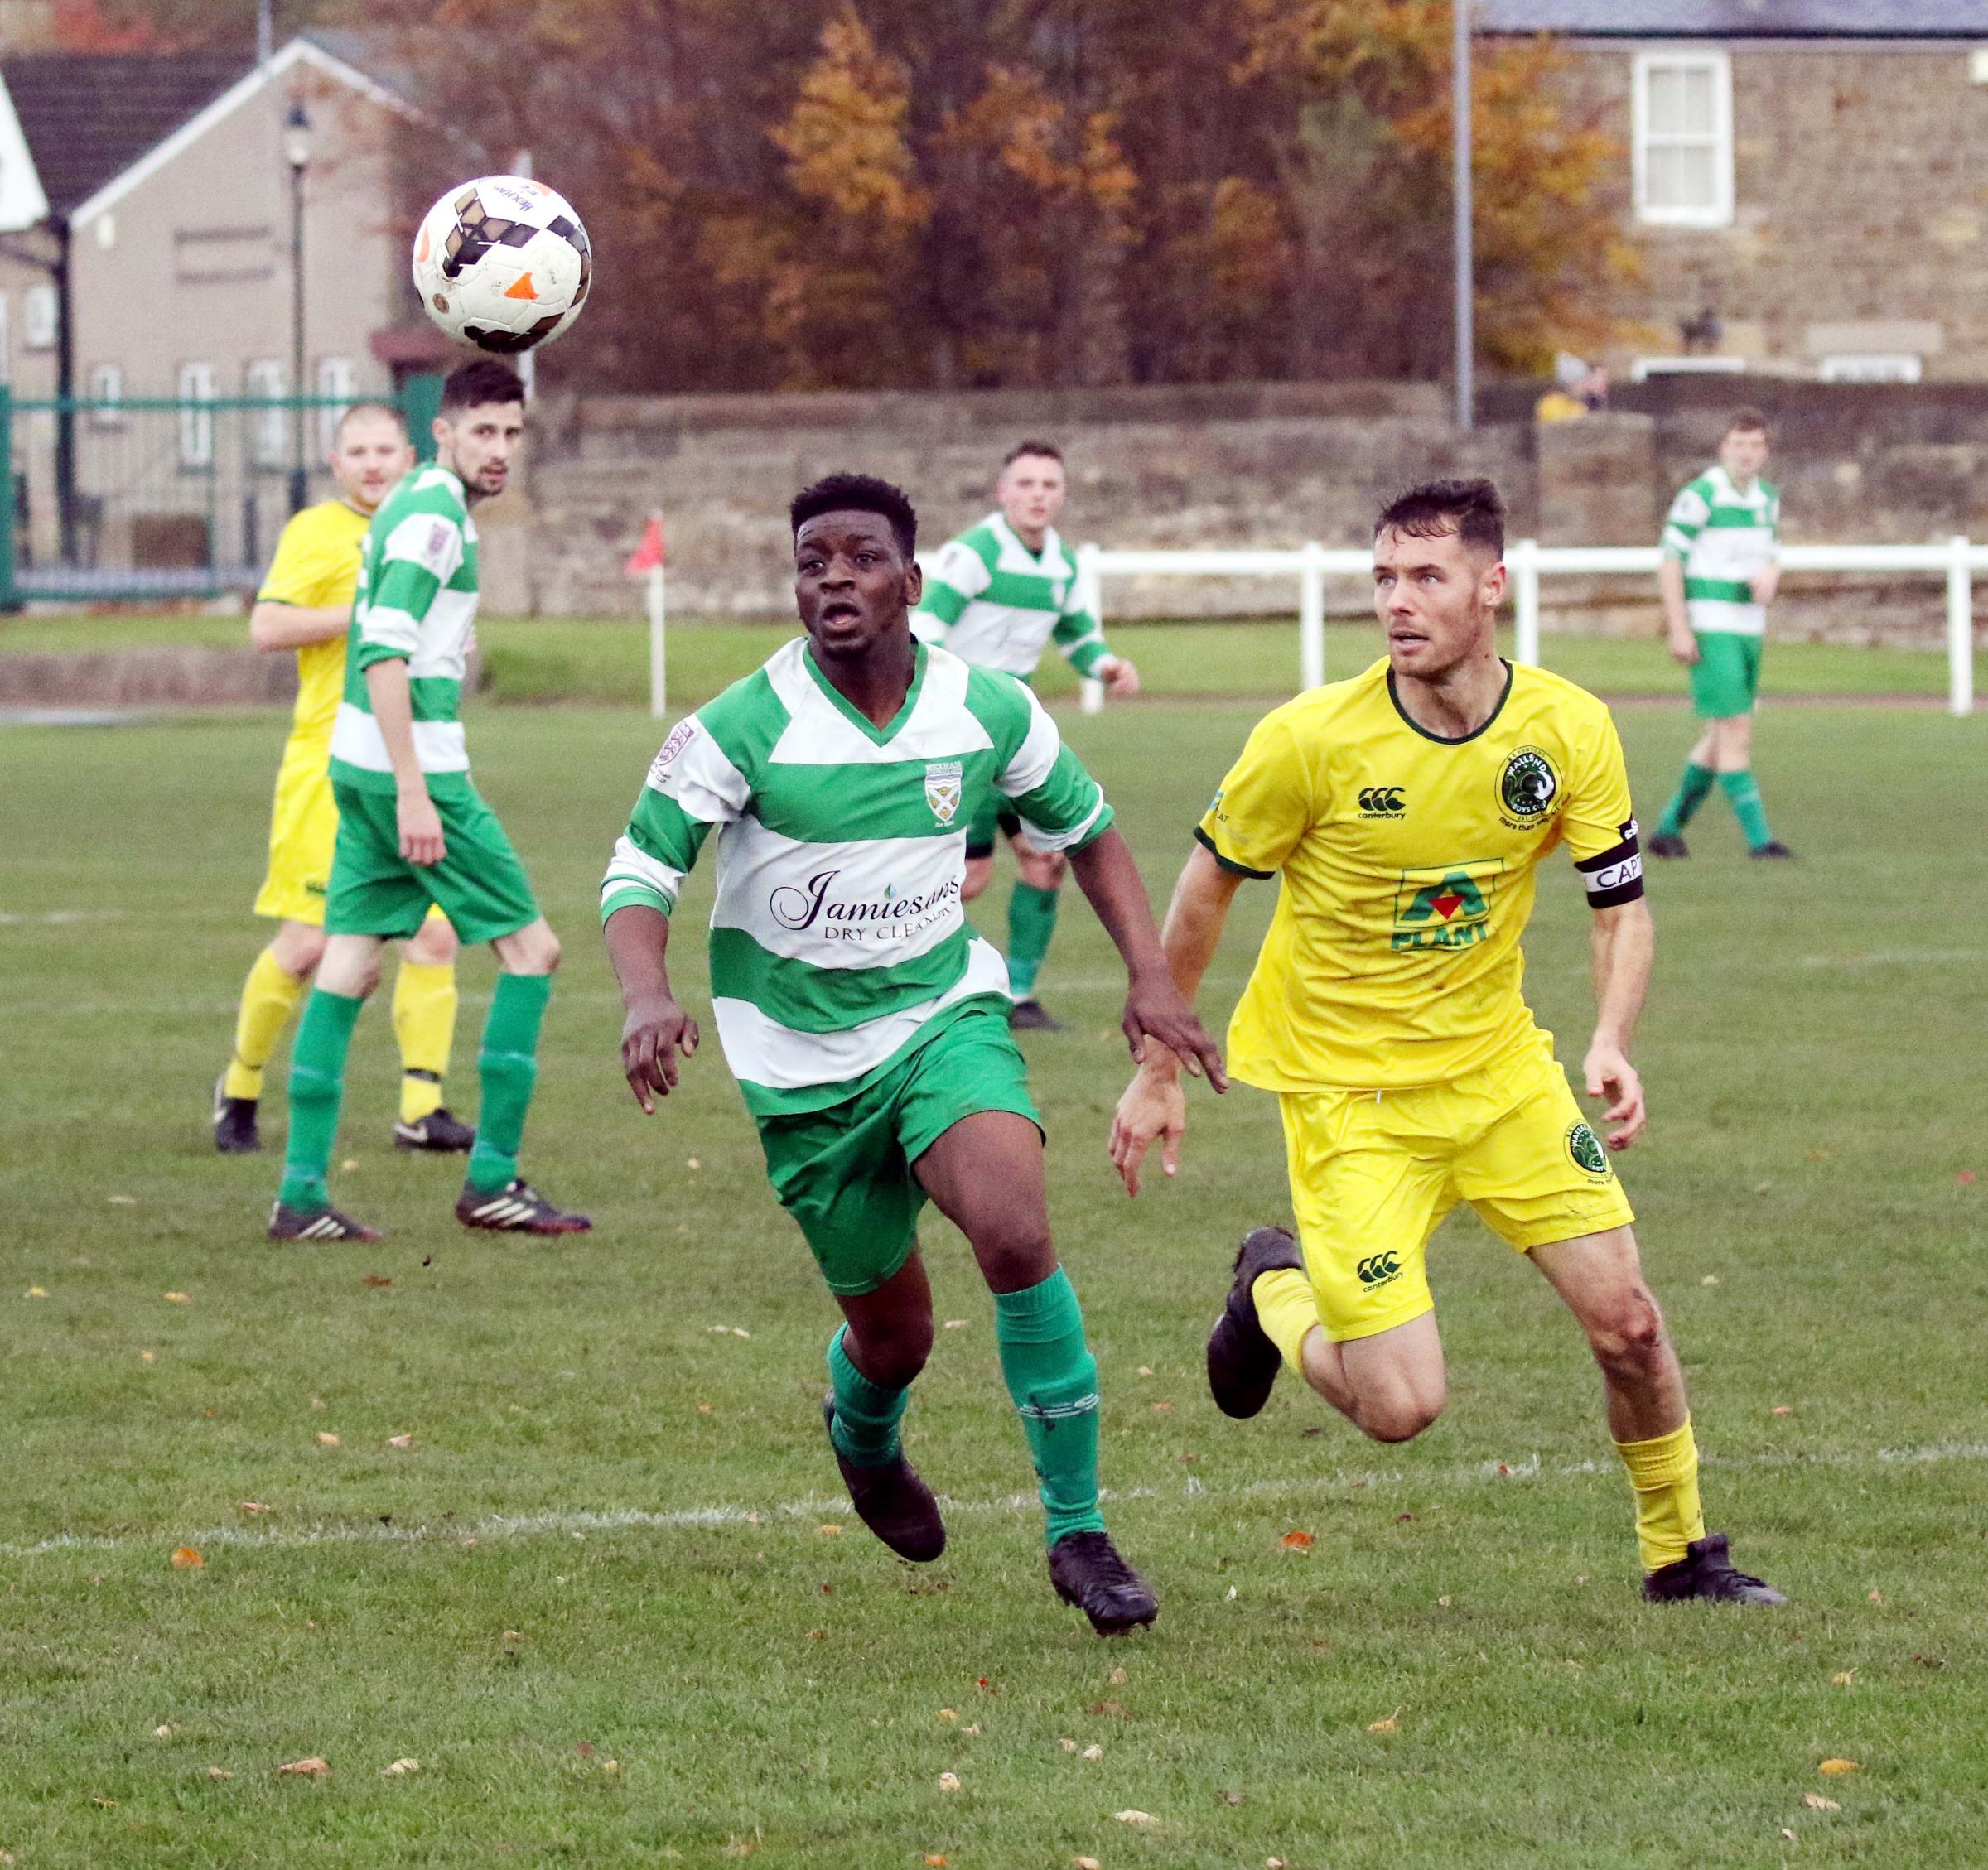 Hexham's Dylan Mabunu scored a hat-trick against Wallsend Community. Photo: PAUL NORRIS